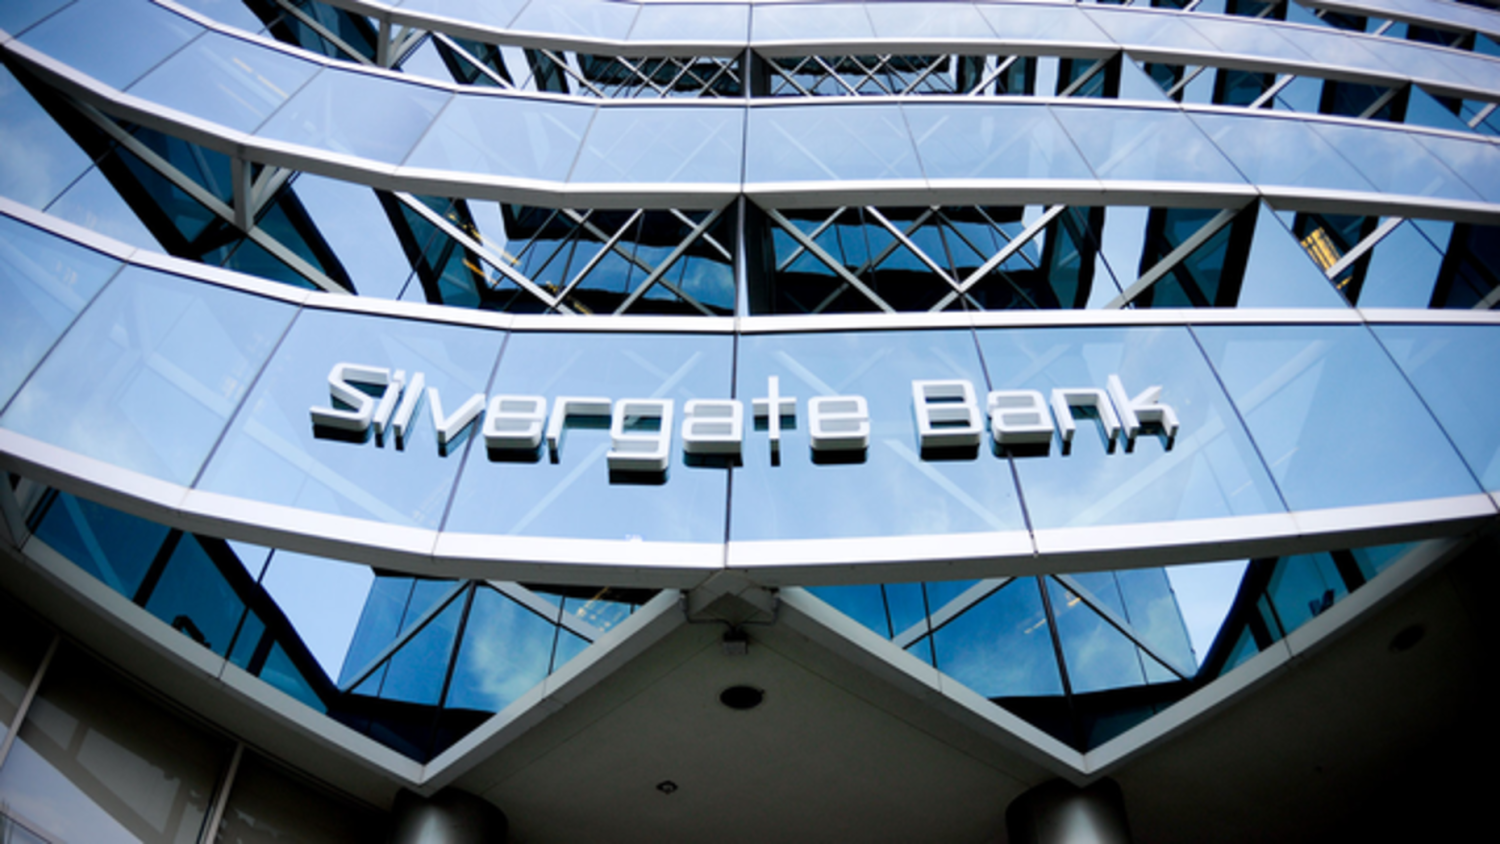 Nearly 500 Crypto Startups Bank at Silvergate, IPO Filing Reveals